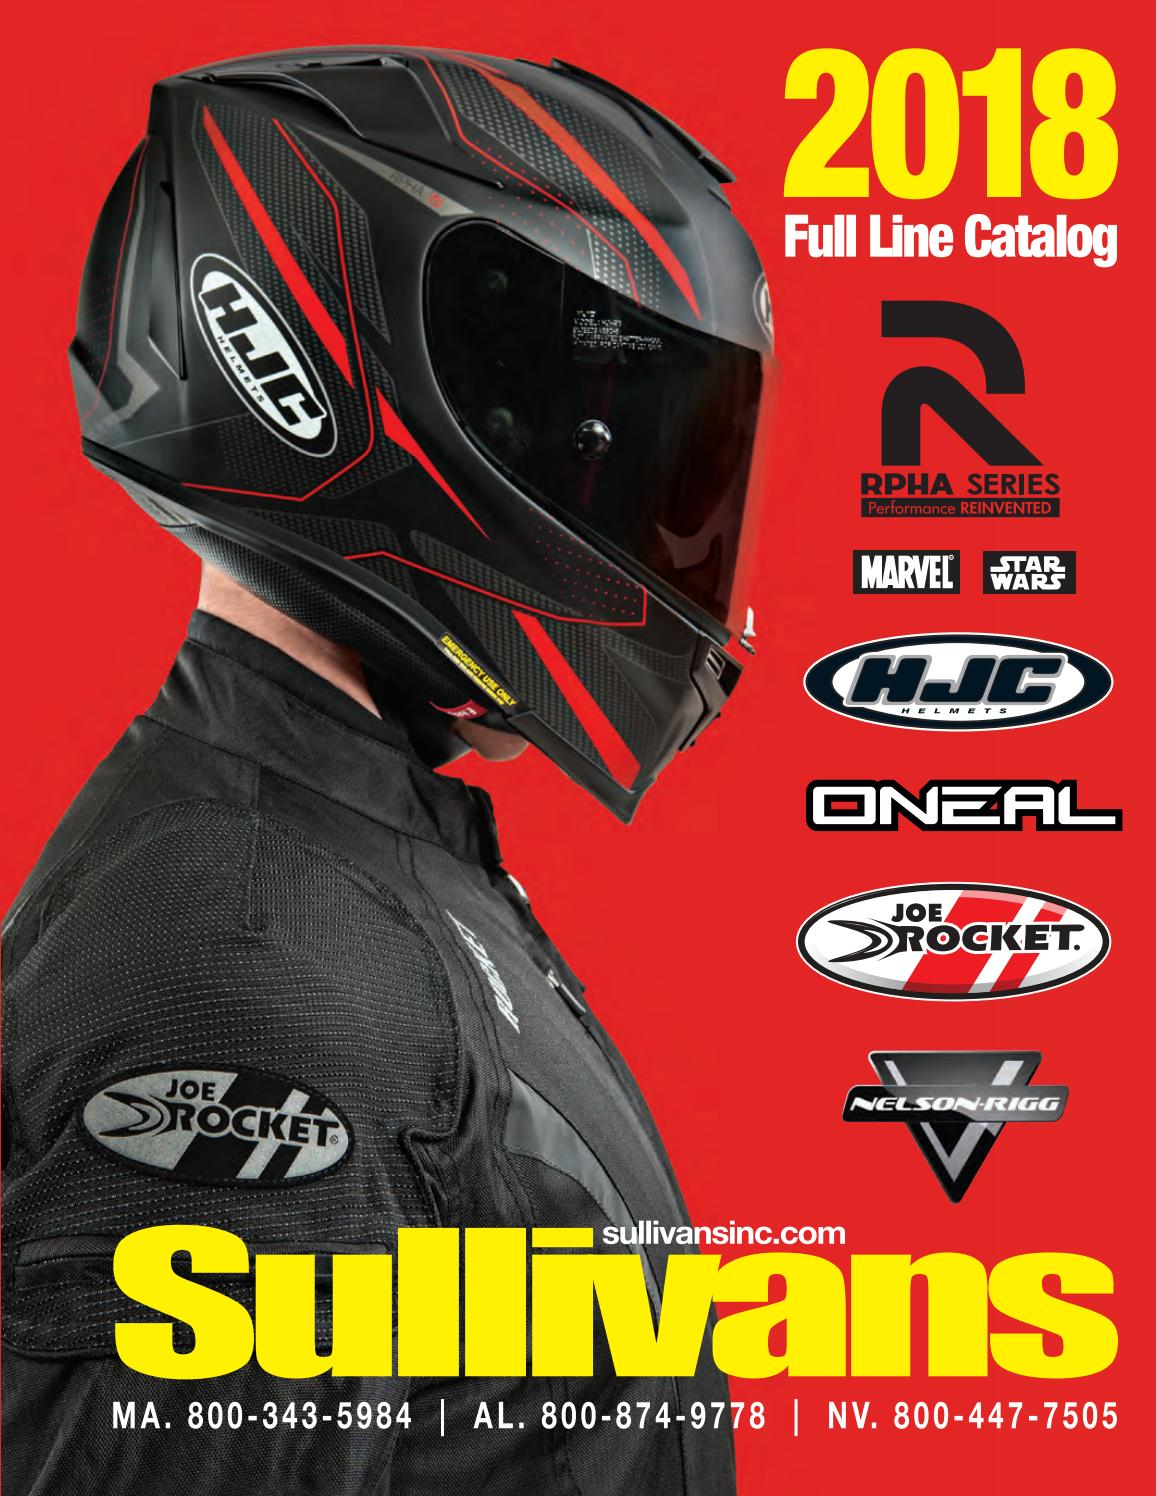 2018 Sullivans Inc Full Line Product Catalog by Sullivans